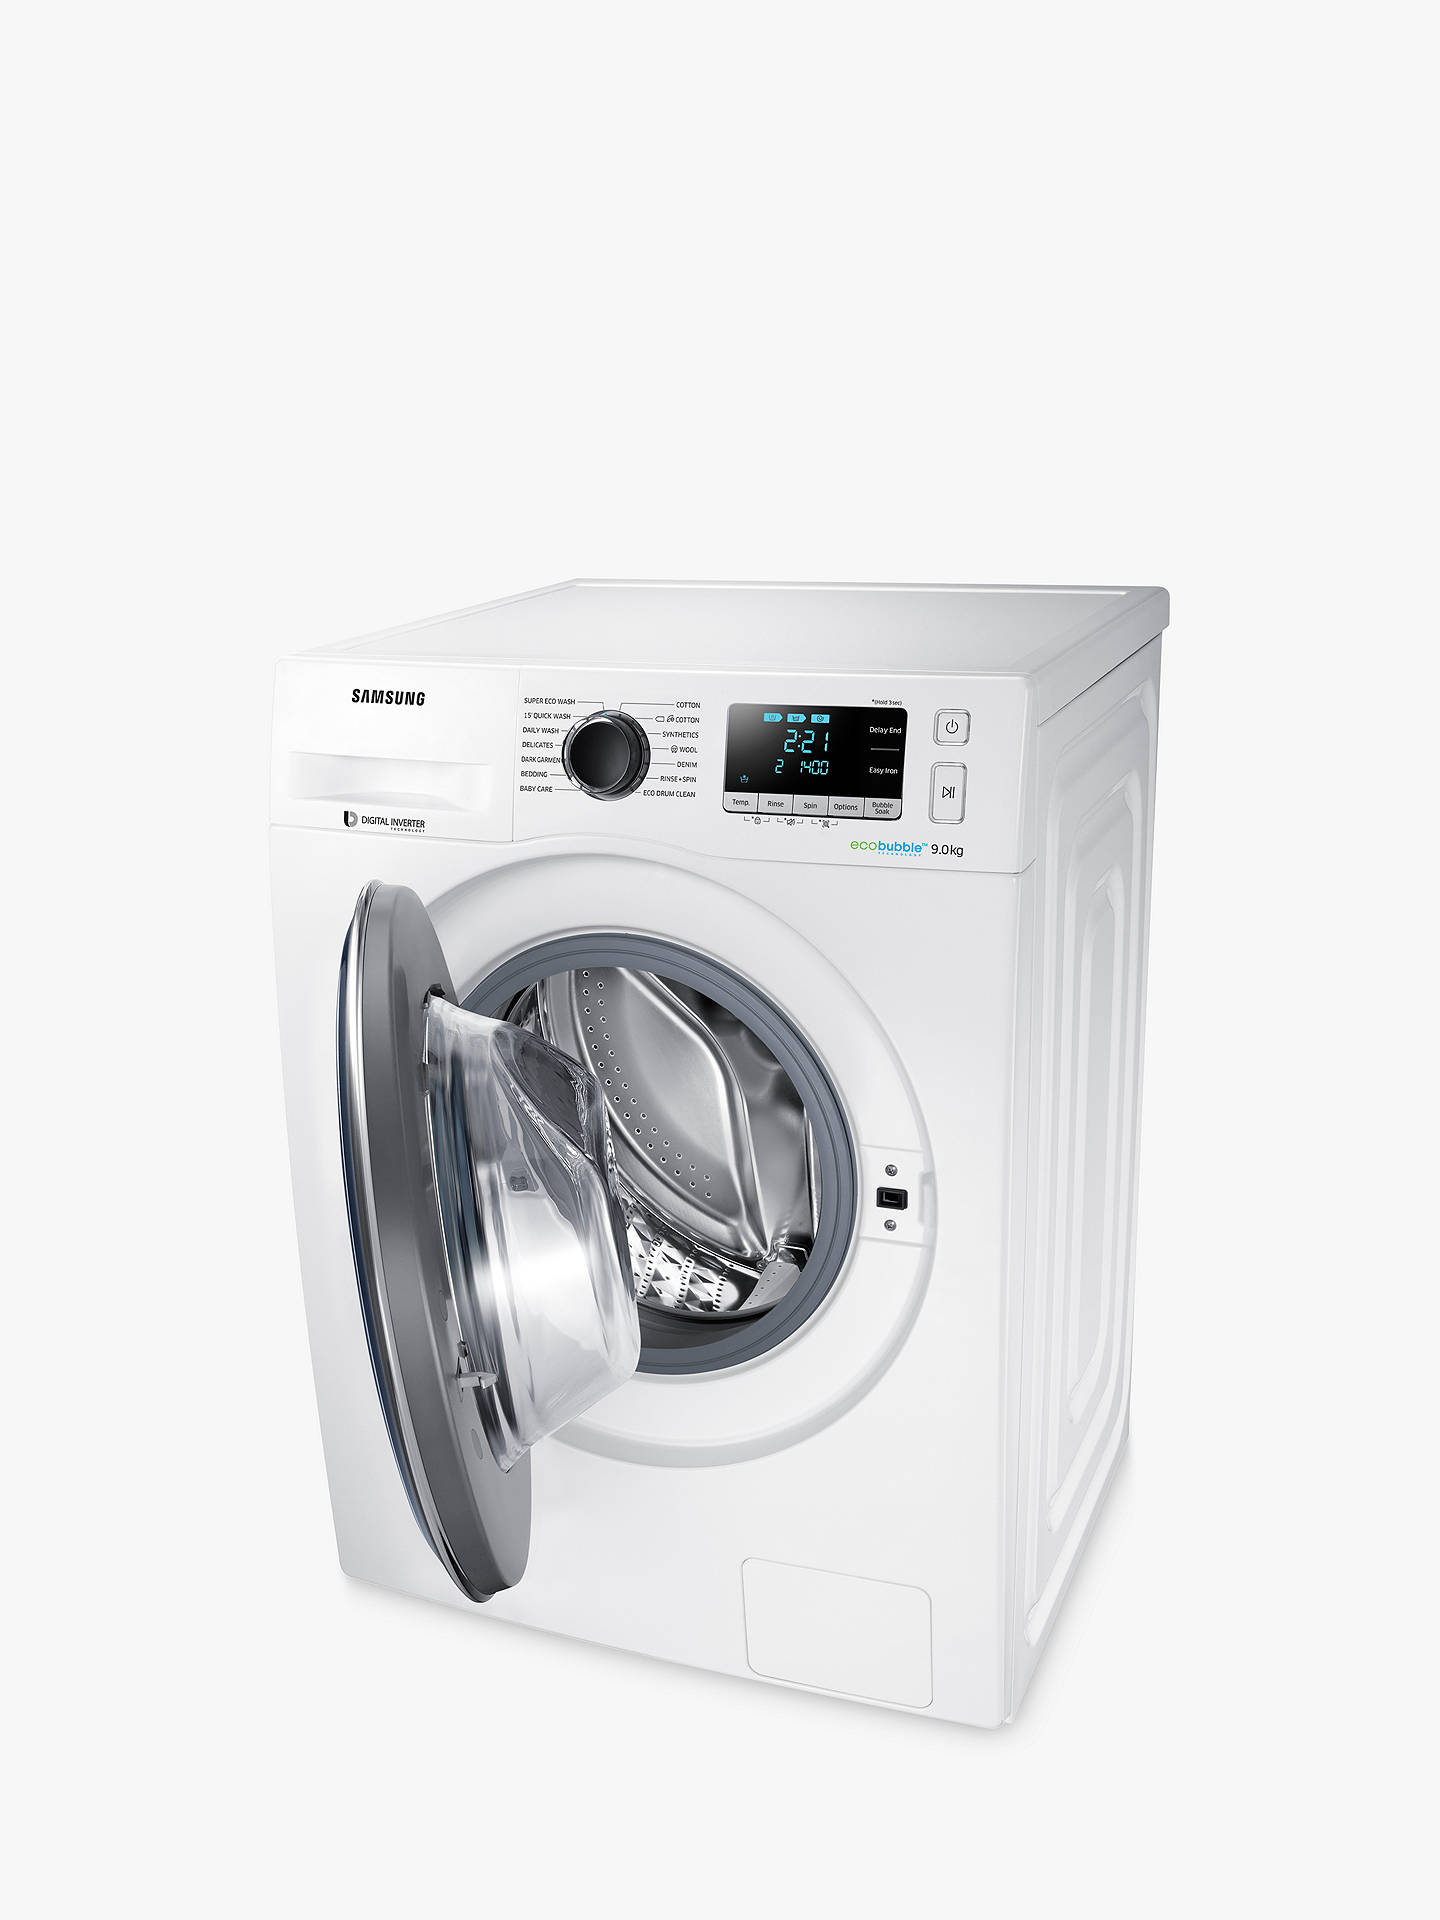 Samsung WW90J5456FW ecobubble™ Freestanding Washing Machine, 9kg Load, A+++  Energy Rating, 1400rpm Spin, White/Grey, White/Grey